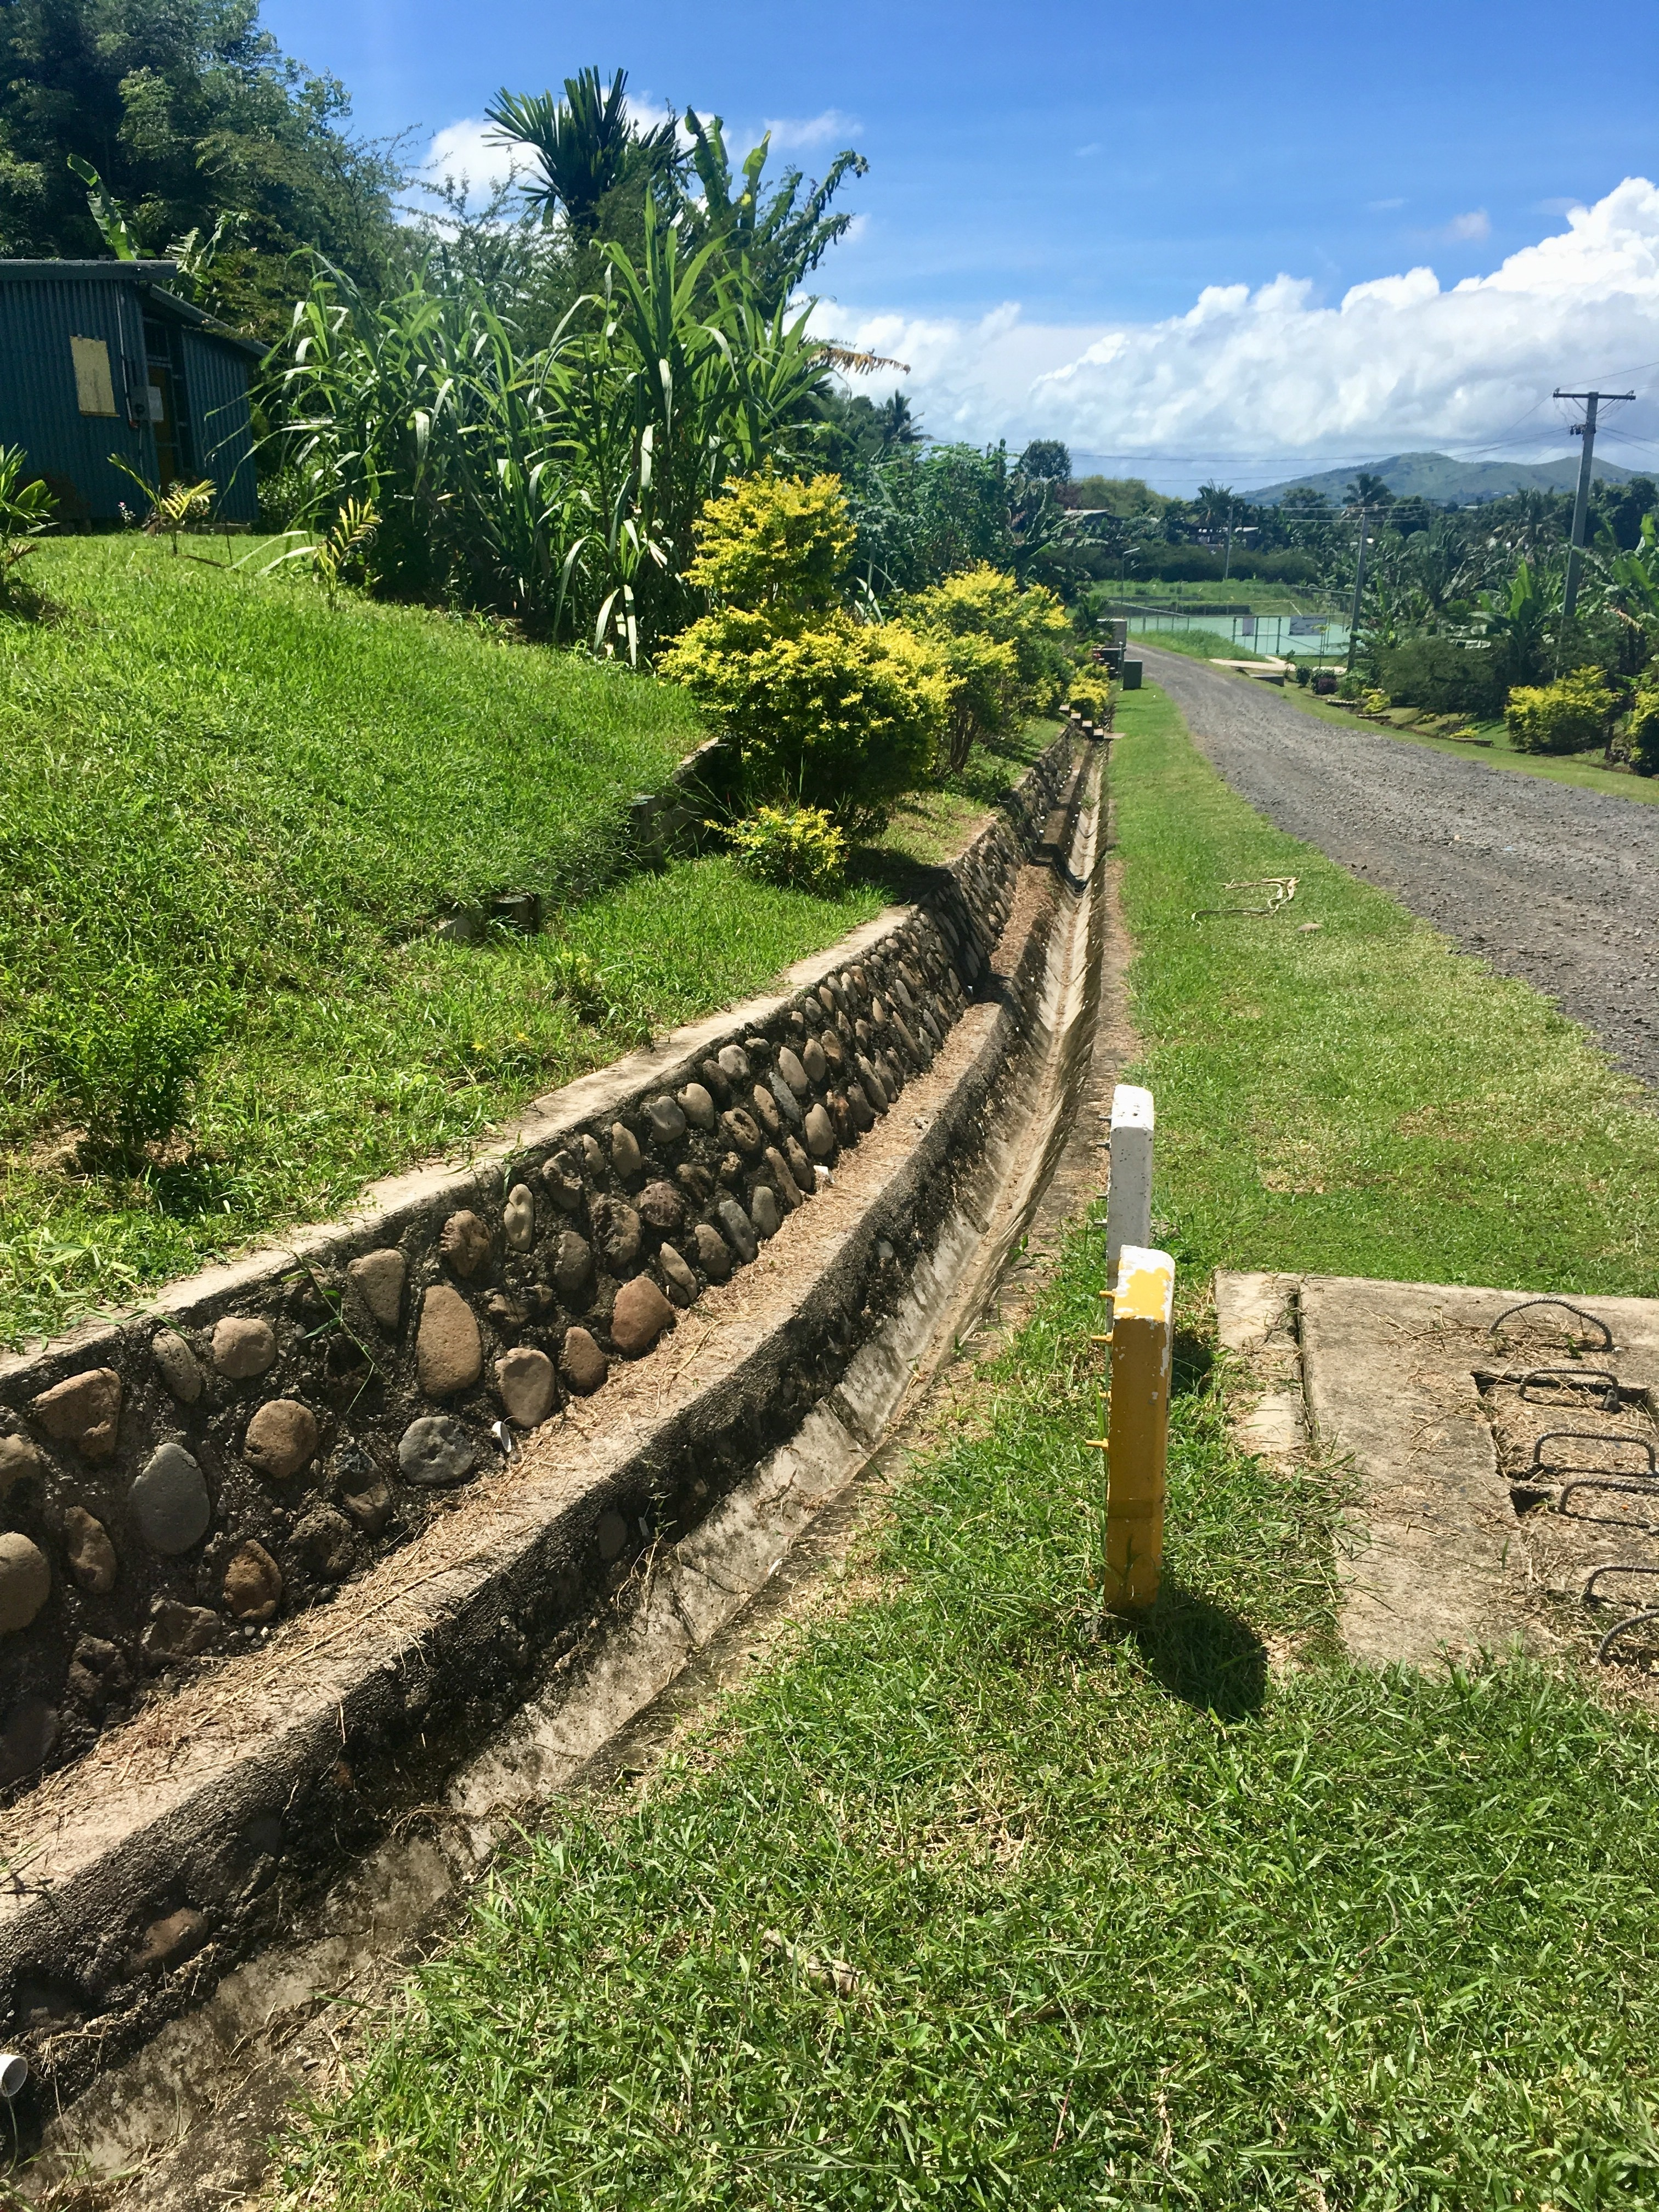 The drainage system in Koroipita Village, Fiji can channel excess water during heavy rains and floods.